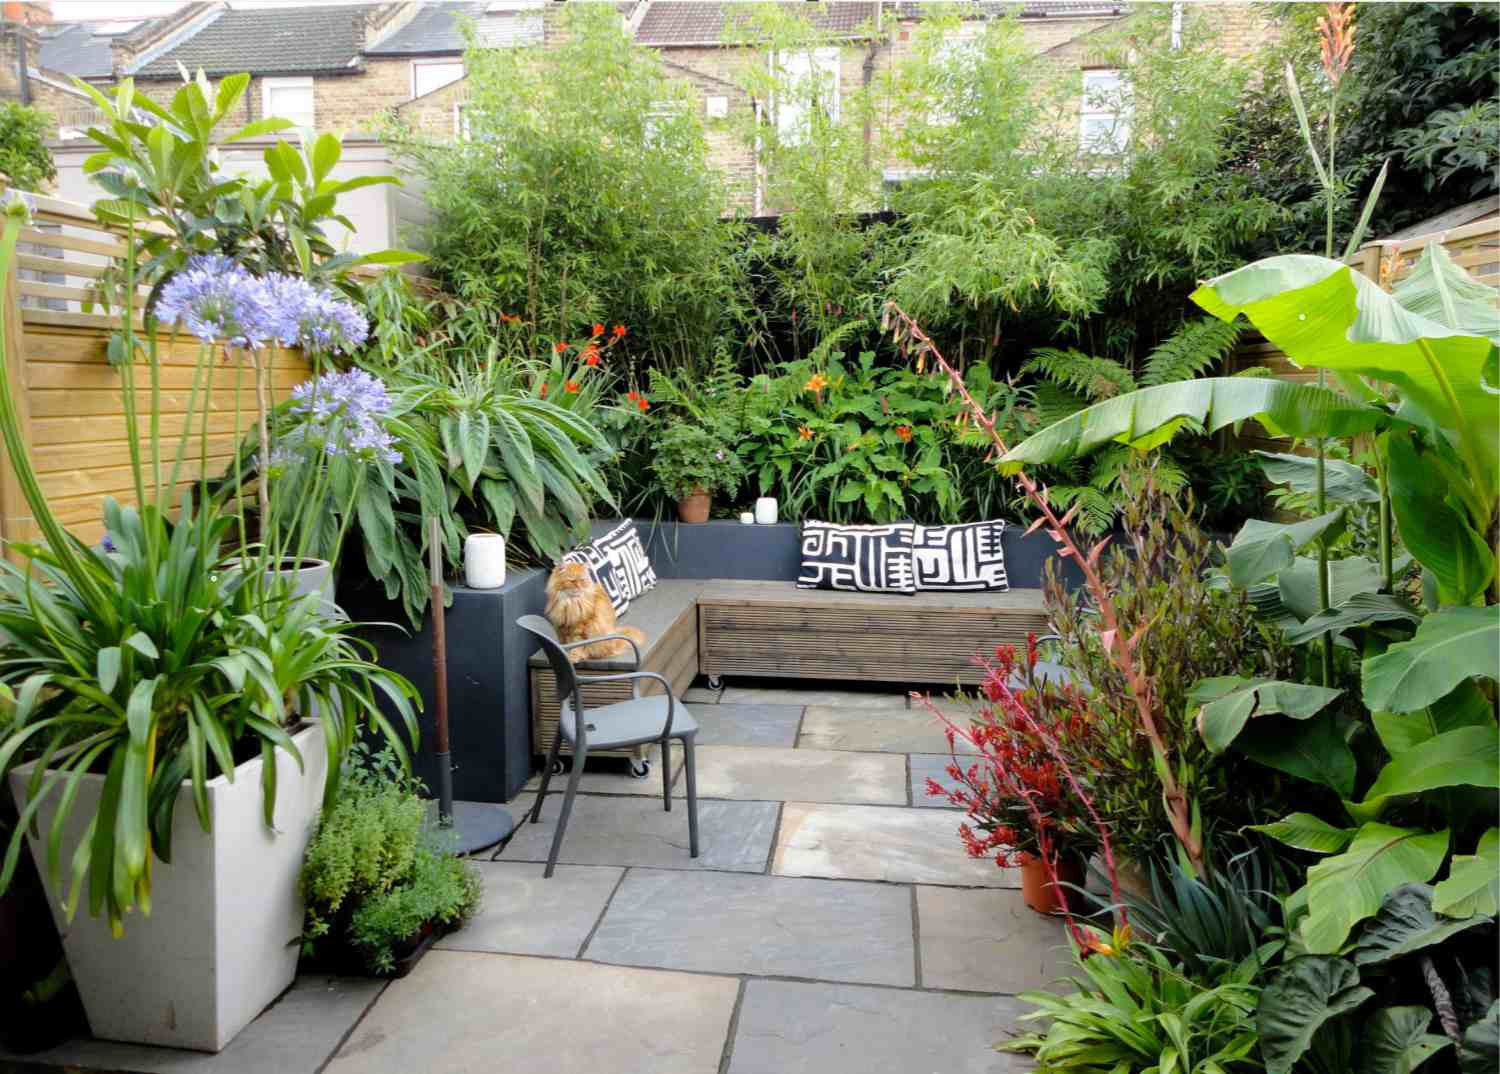 Tropical plants used as a living wall with planters and a couch.